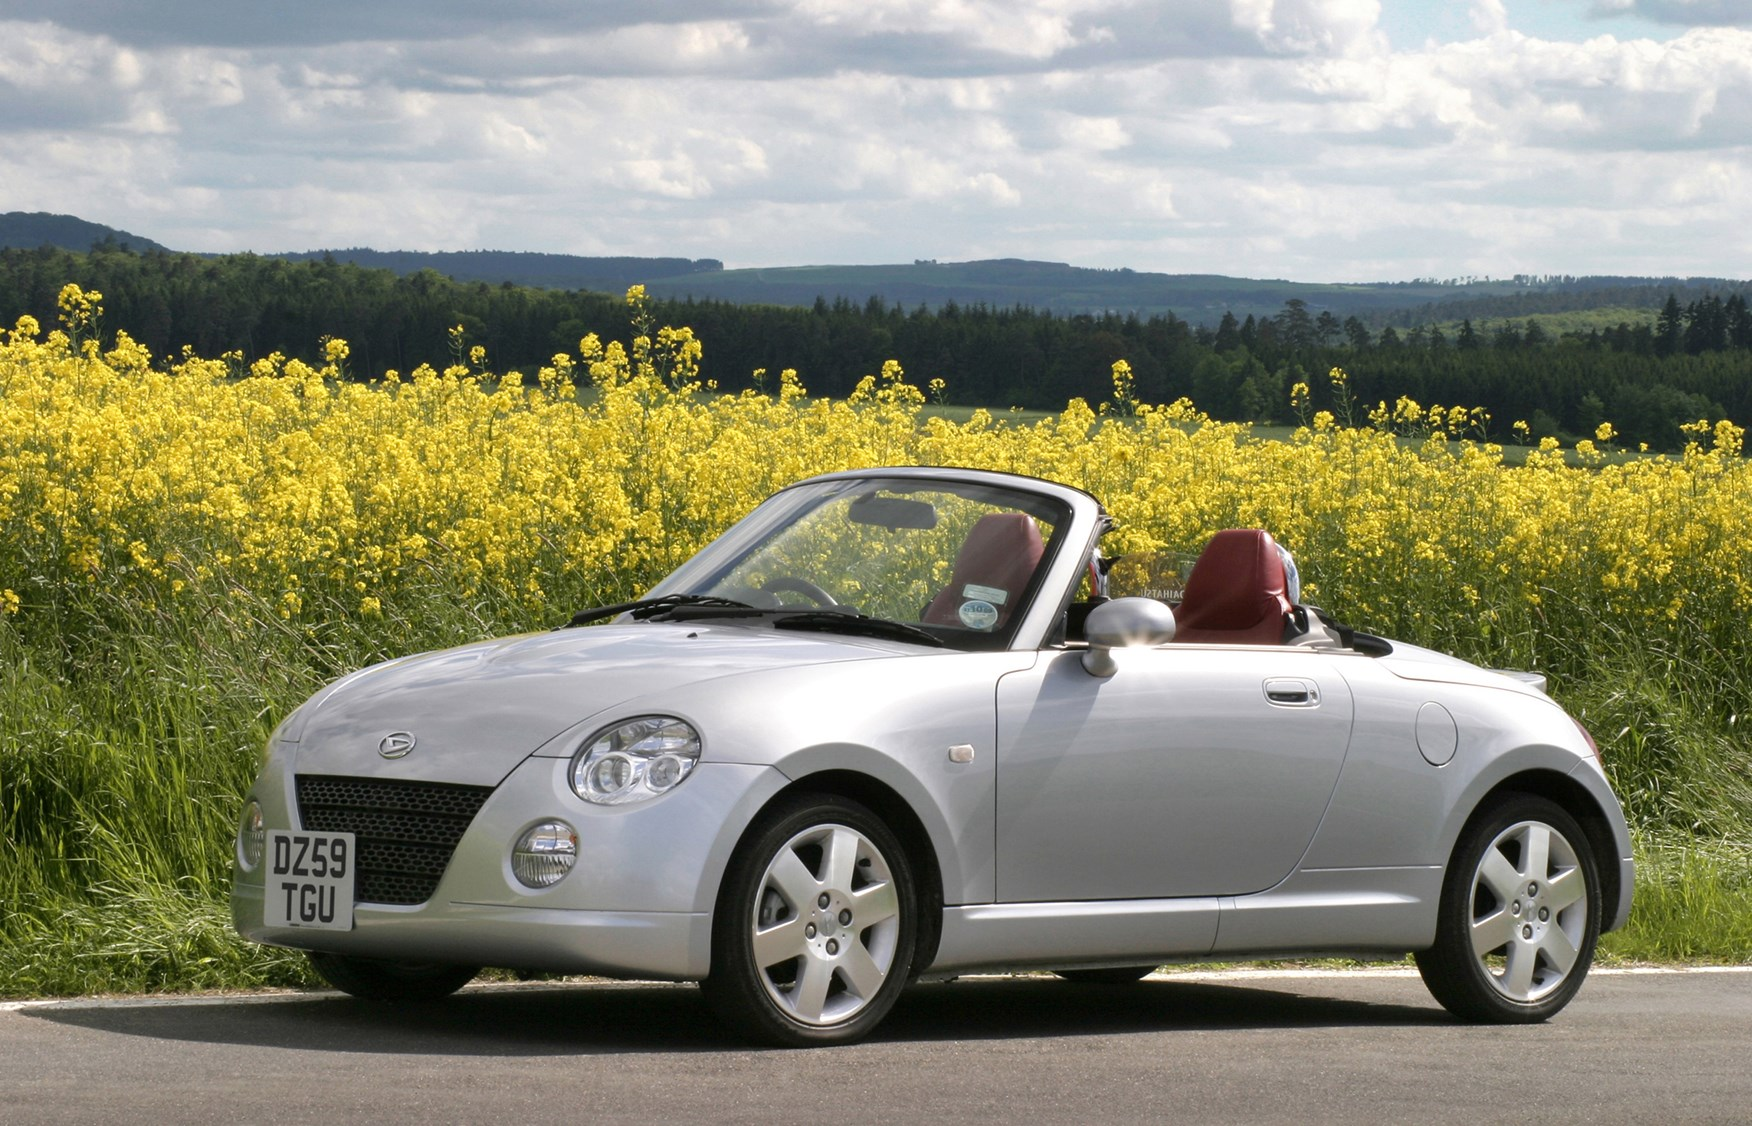 daihatsu copen coupe cabriolet review 2004 2010 parkers. Black Bedroom Furniture Sets. Home Design Ideas